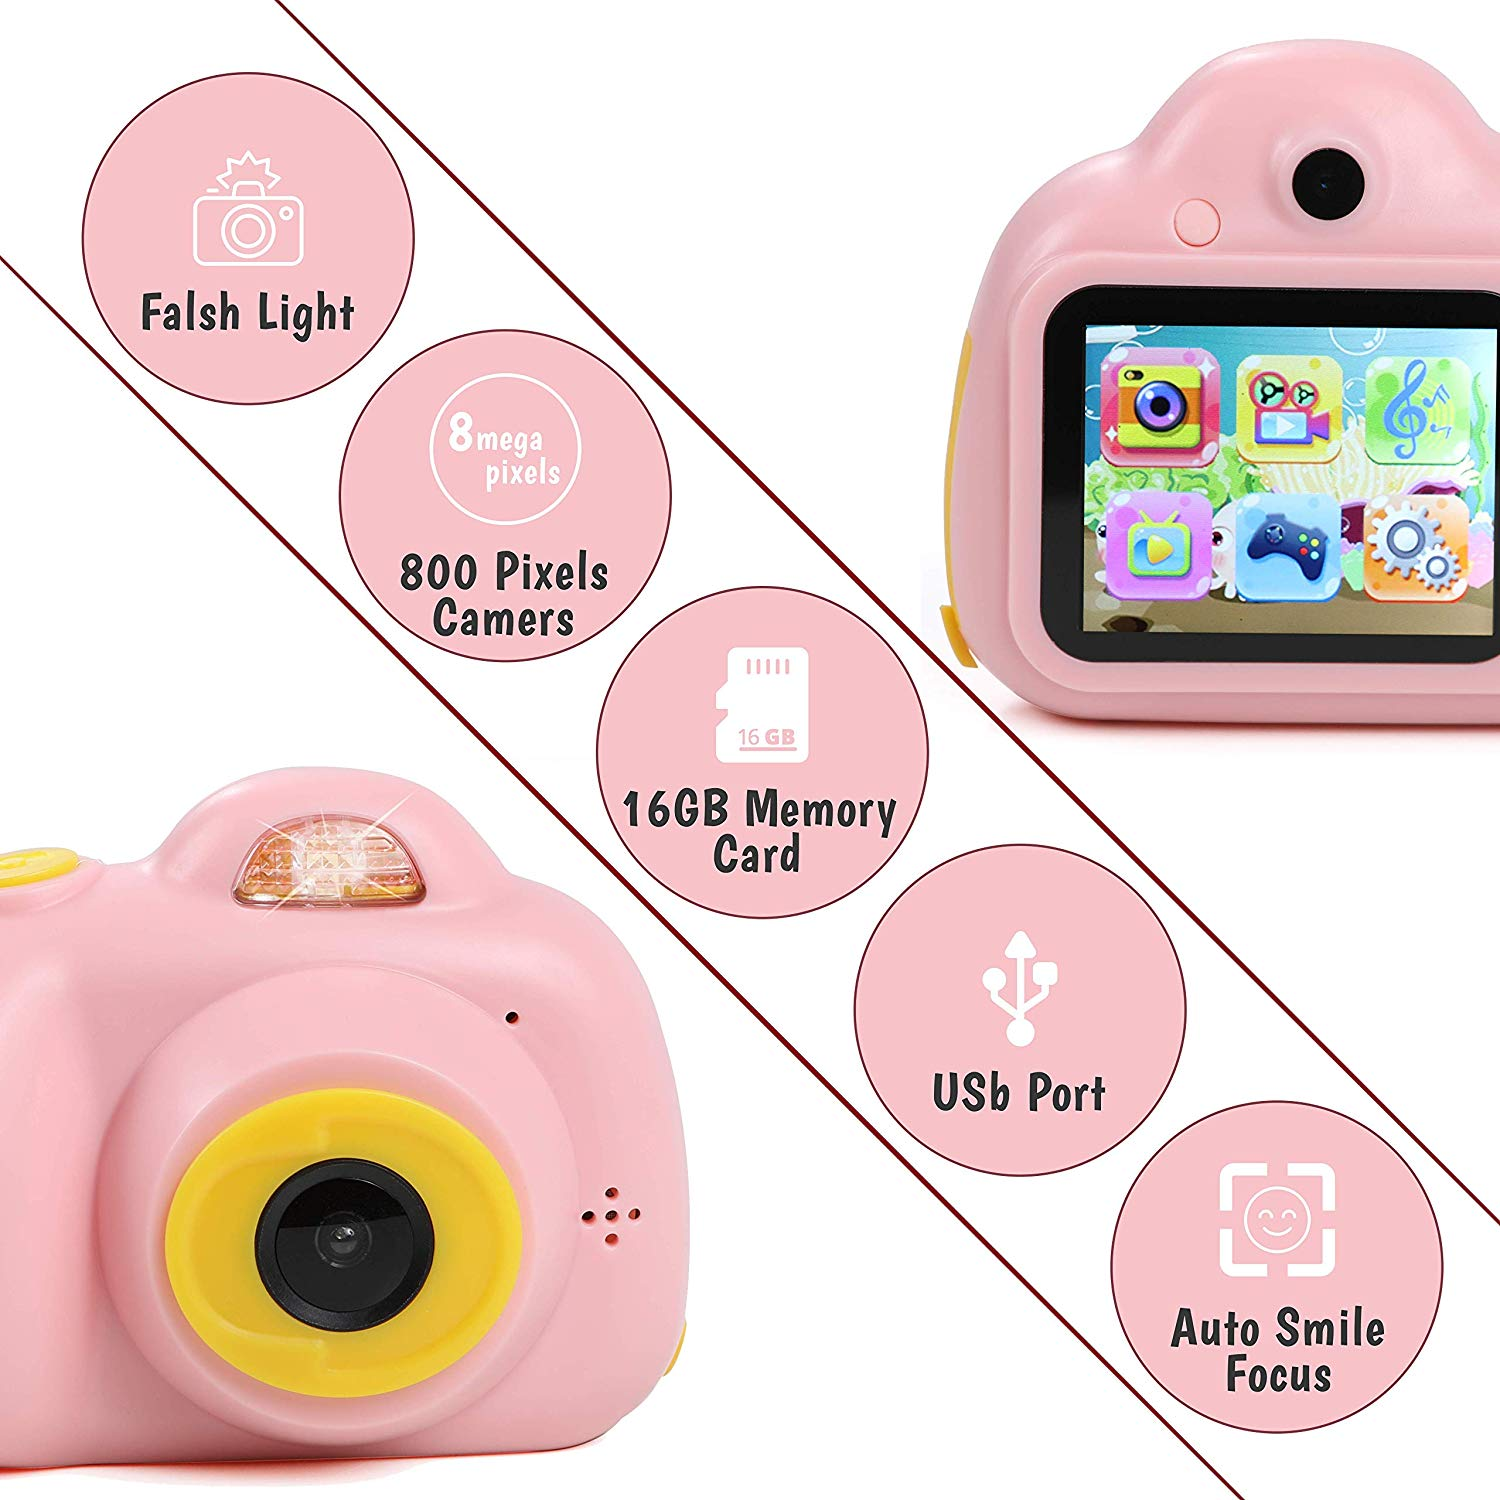 IQ Toys Digital Camera Gift for Kids- takes Pictures, Videos, Records and Digital Image Playback. Mini Rechargable Camera Comes with USB Cable, 16 GB SD Card, and USB Card Reader Included